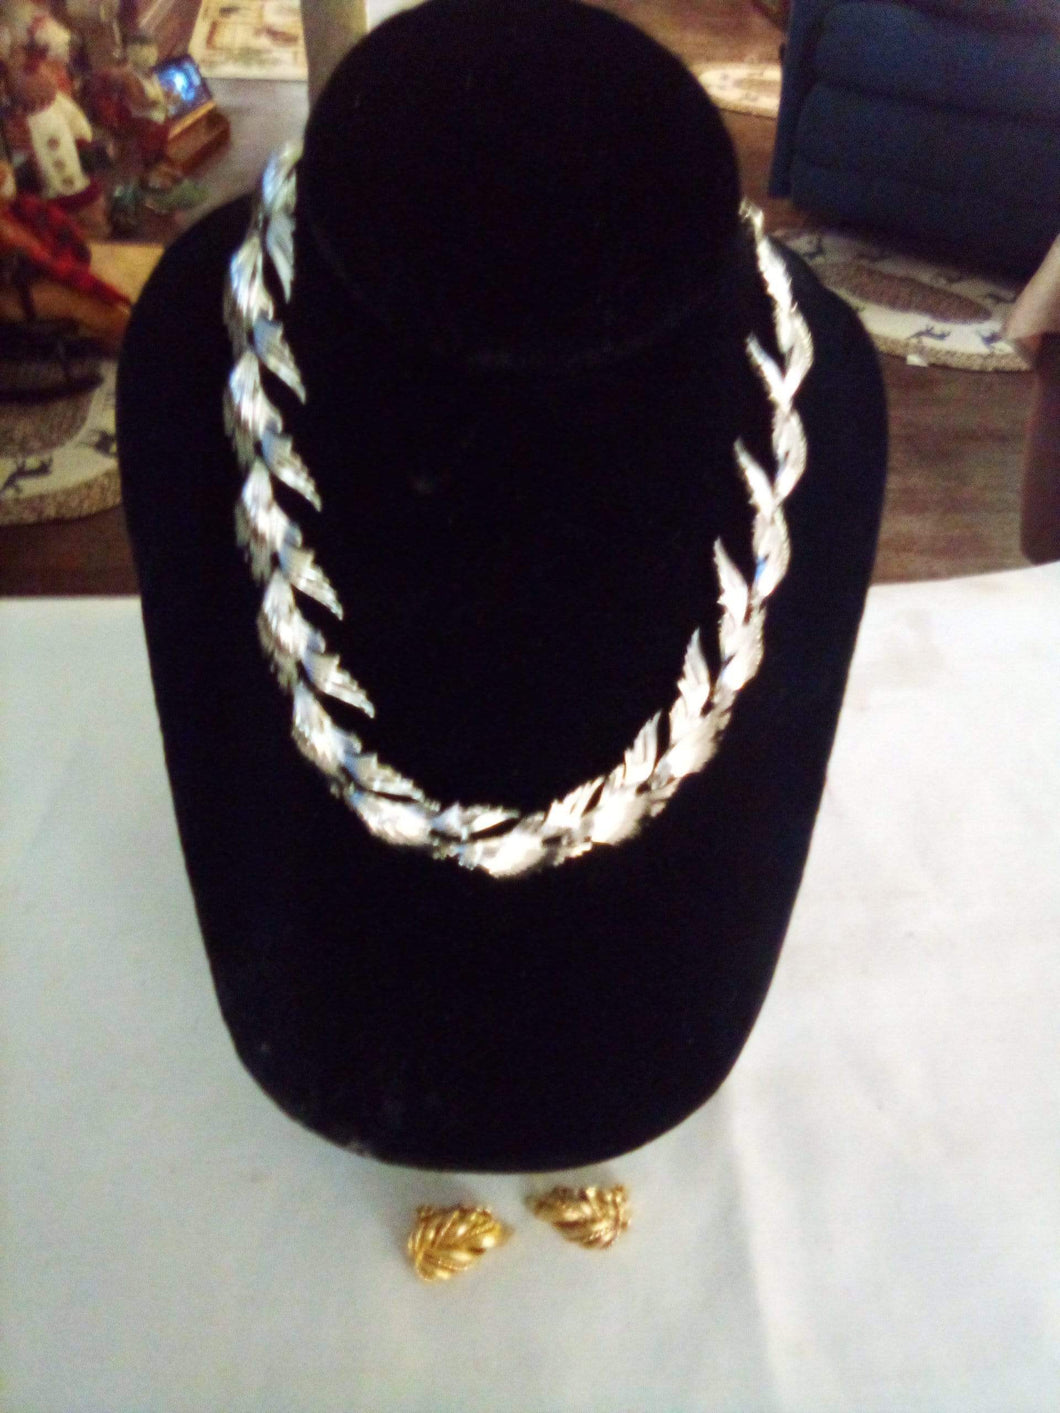 Lisner marked earrings and necklace - B&P'sringsnthings